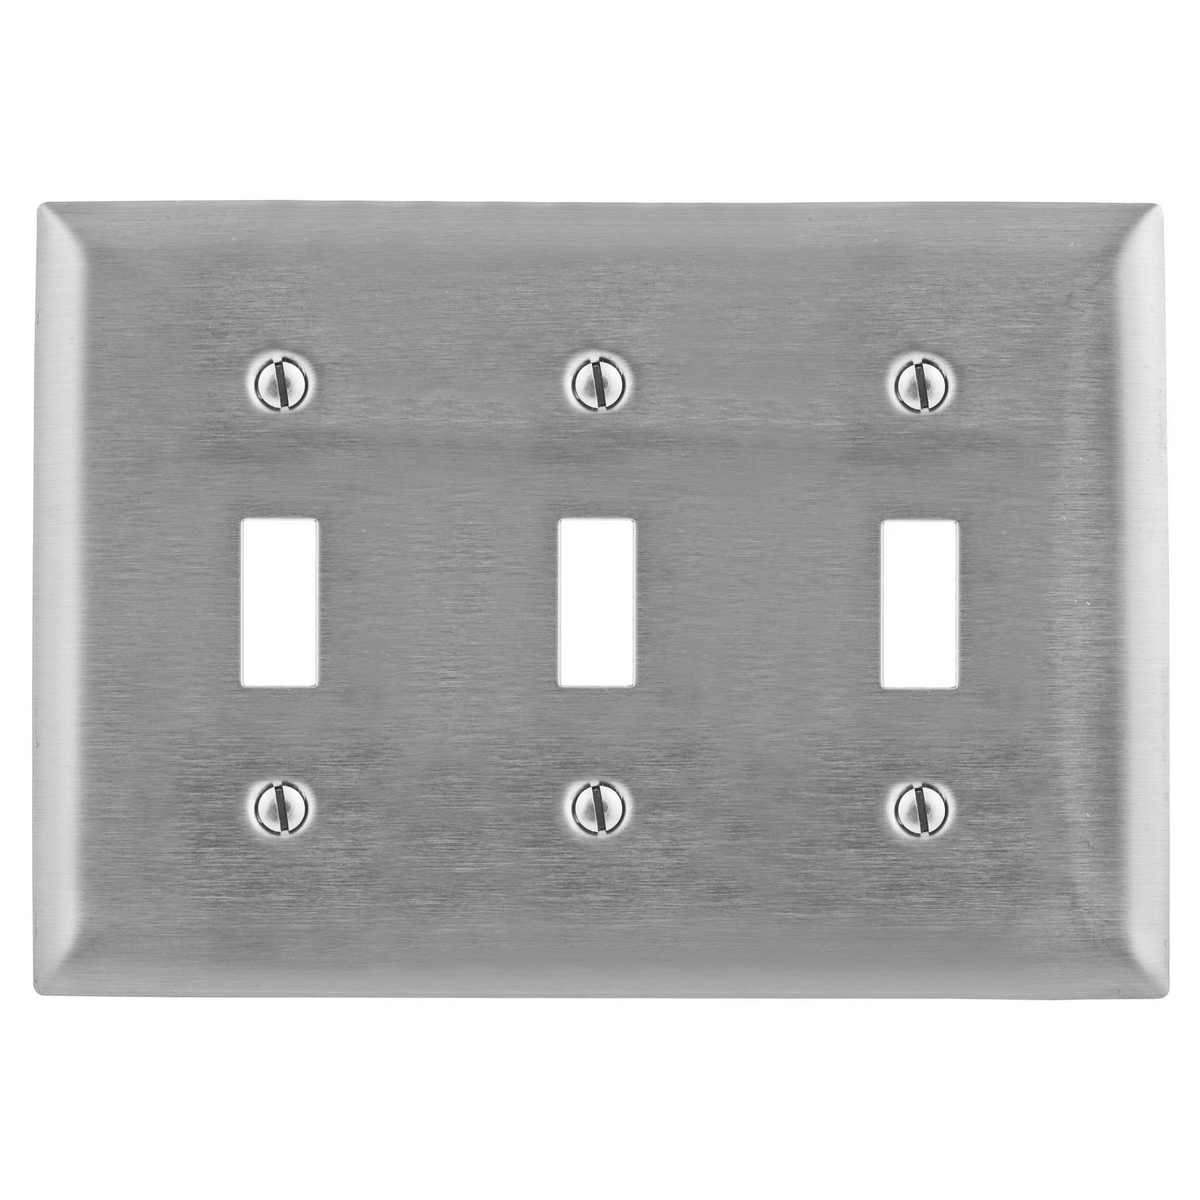 Hubbell SS3 3-Gang Stainless Steel 3-Toggle Switch Strap Mount Wallplate